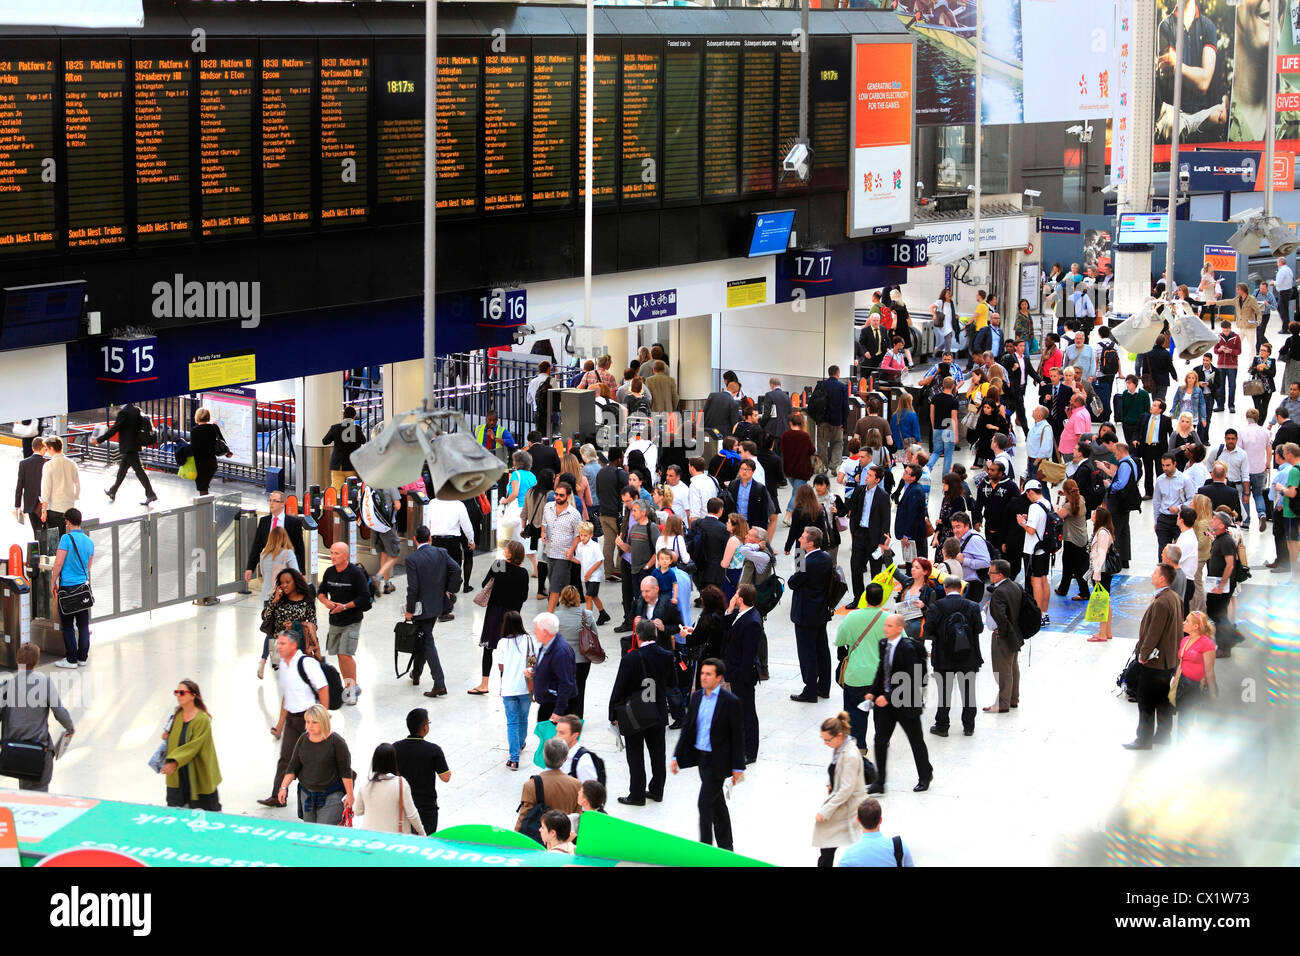 Waterloo Station concourse in London UK. - Stock Image